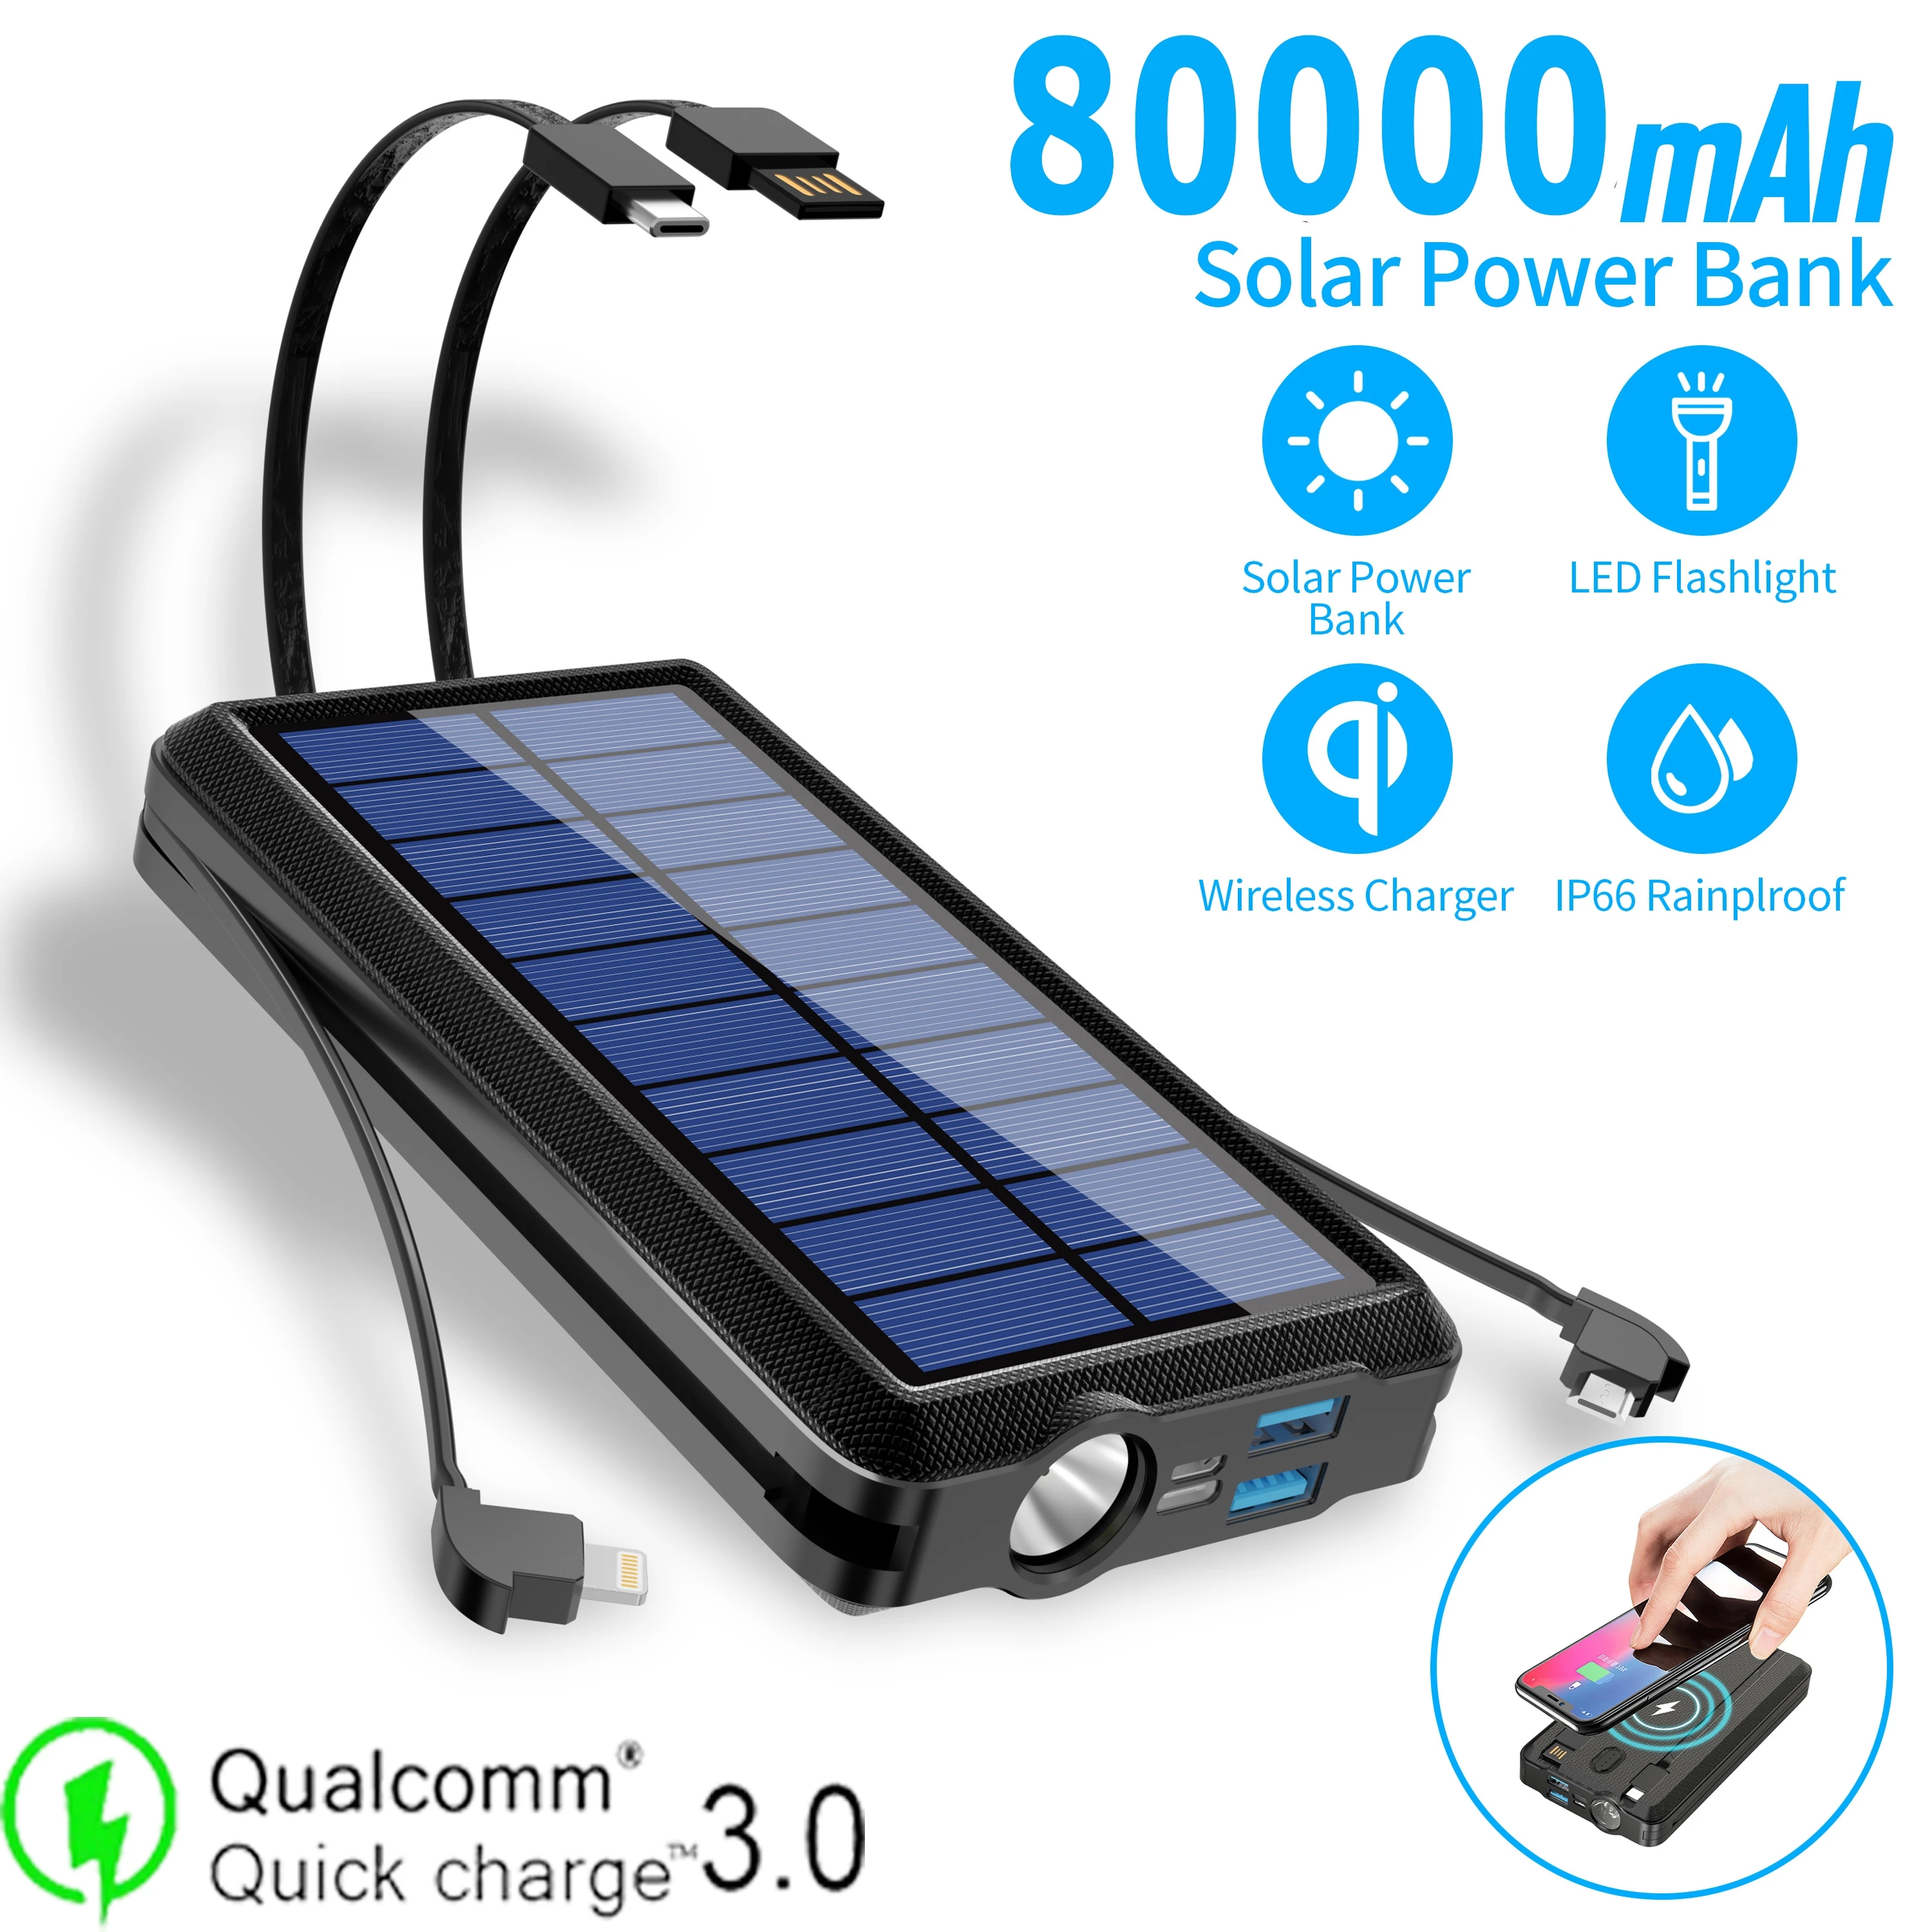 80000mah Qi Wireless Charging Solar Batteery Panel Portable Powerbank LED Emergency Fast External Battery For Iphone Samsung